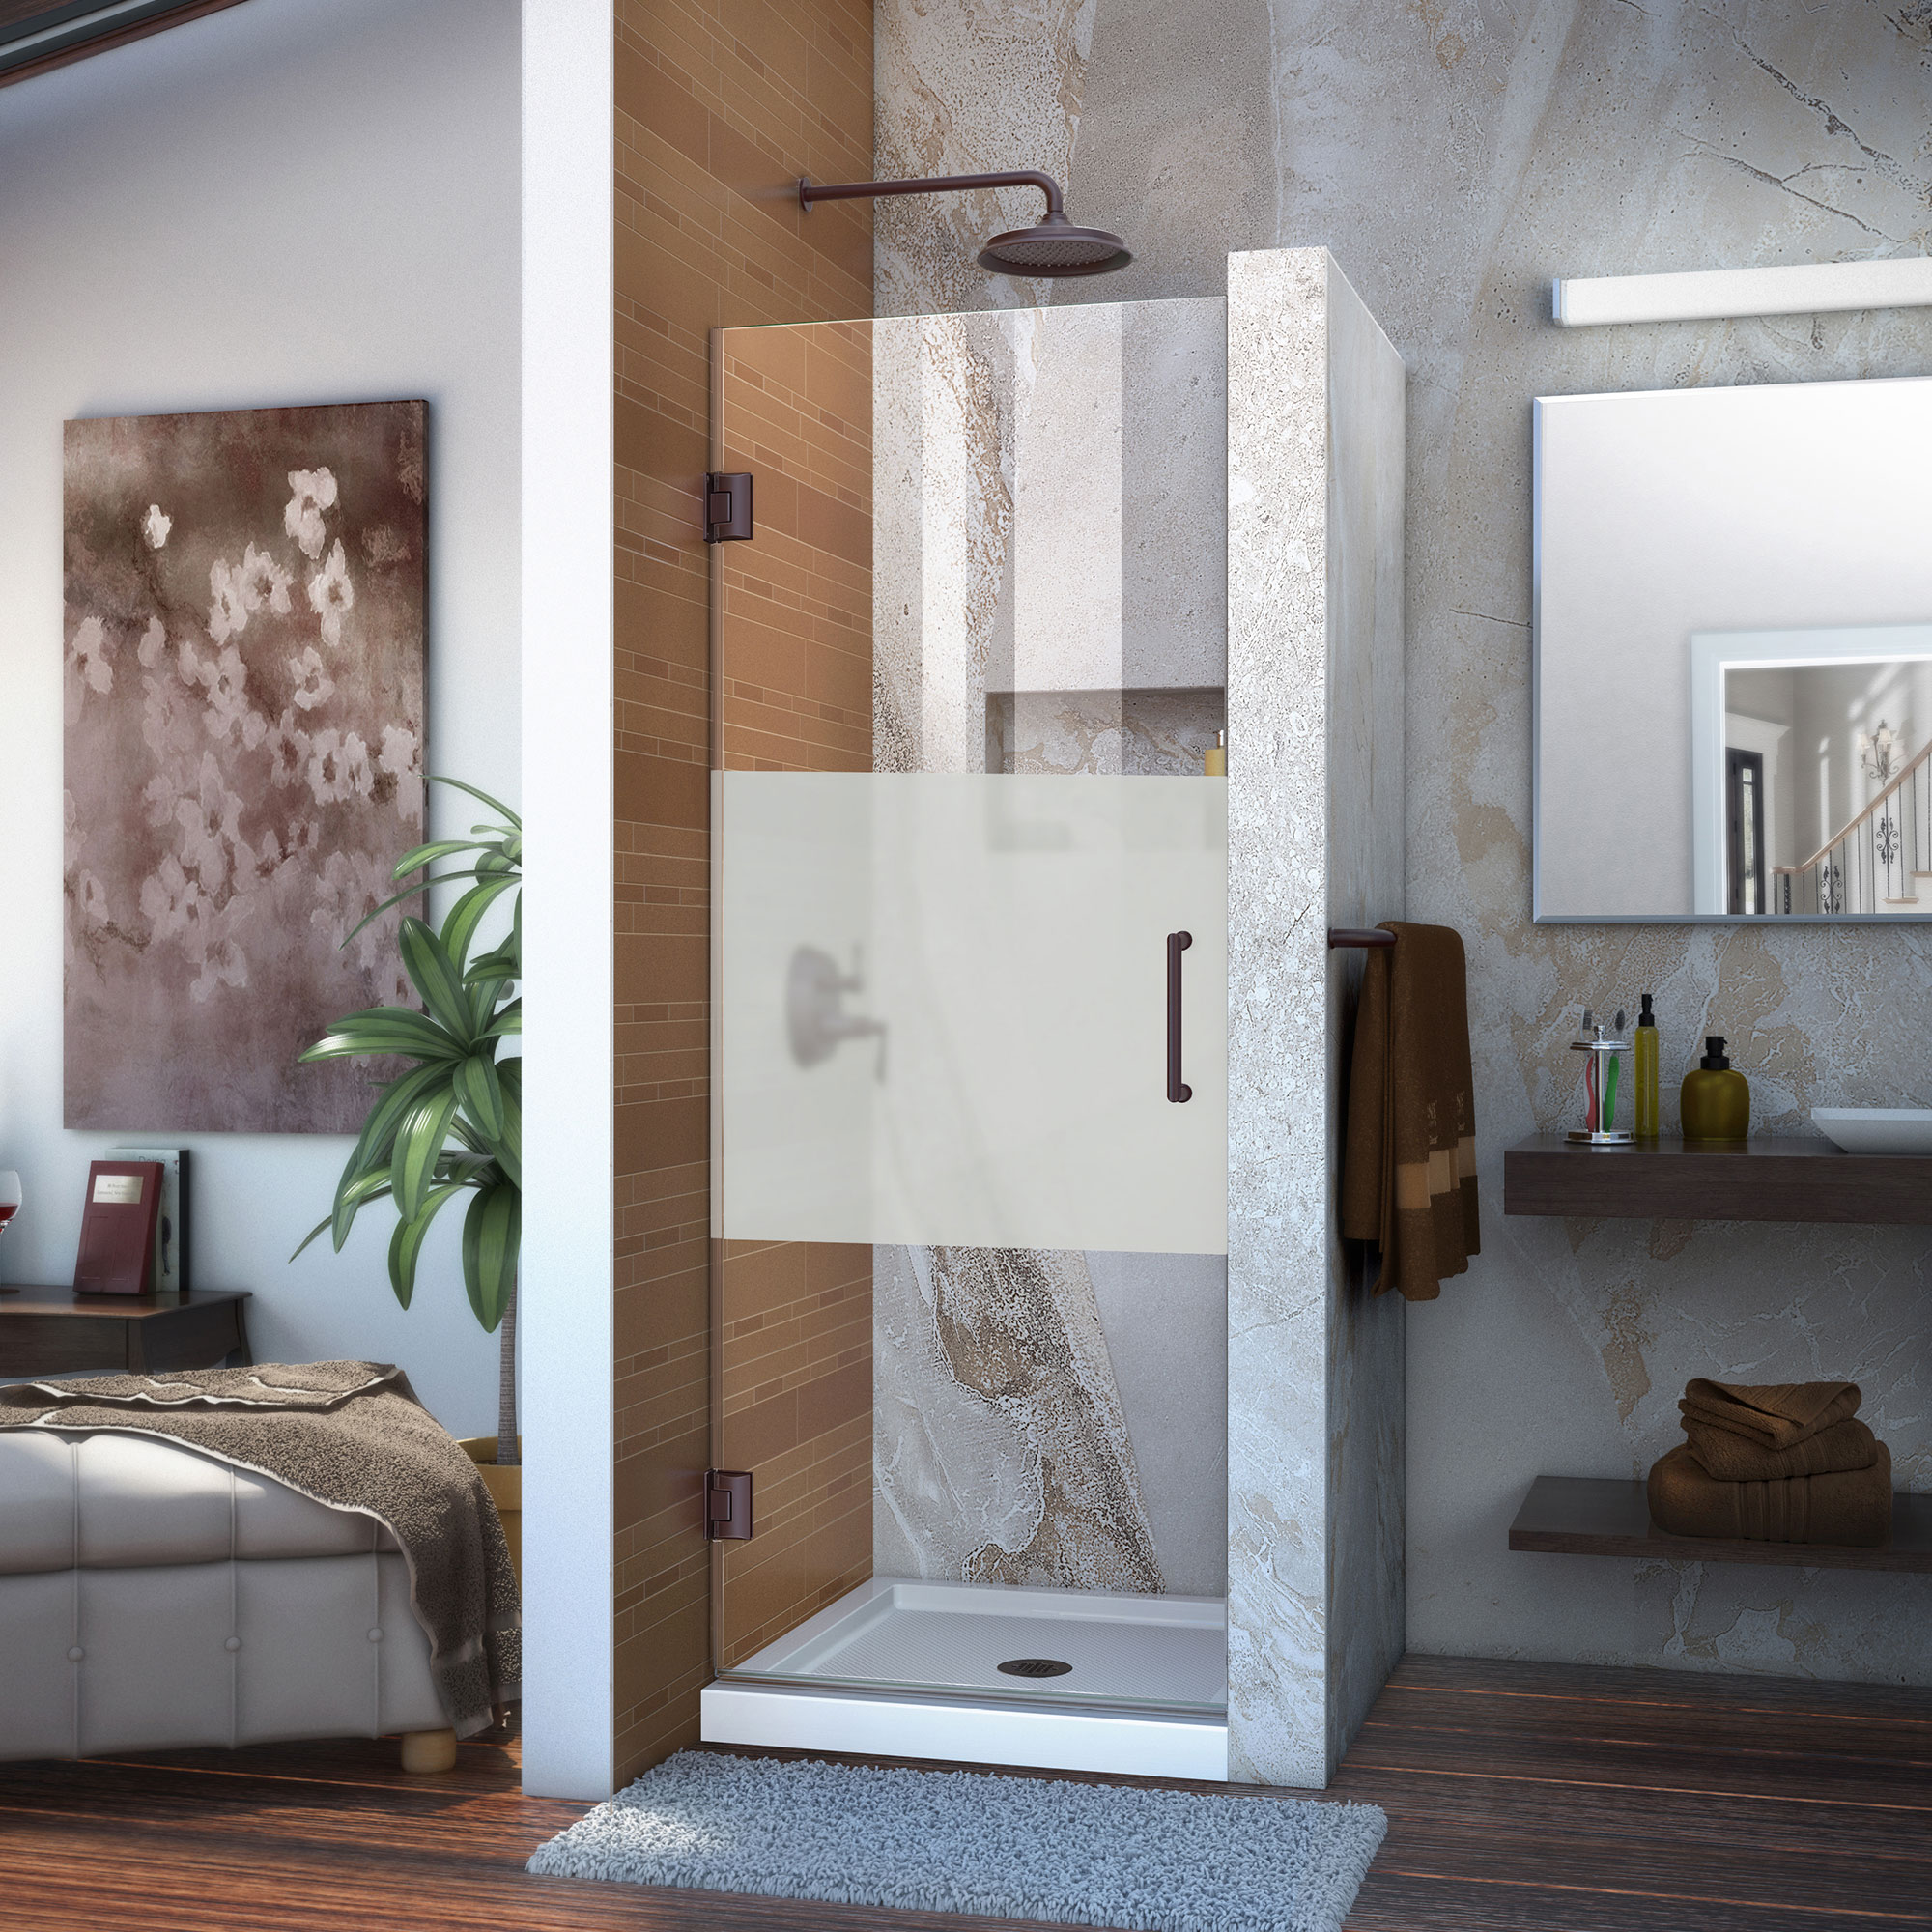 DreamLine Unidoor 25 in. W x 72 in. H Frameless Hinged Shower Door, Frosted Band Glass, in Oil Rubbed Bronze